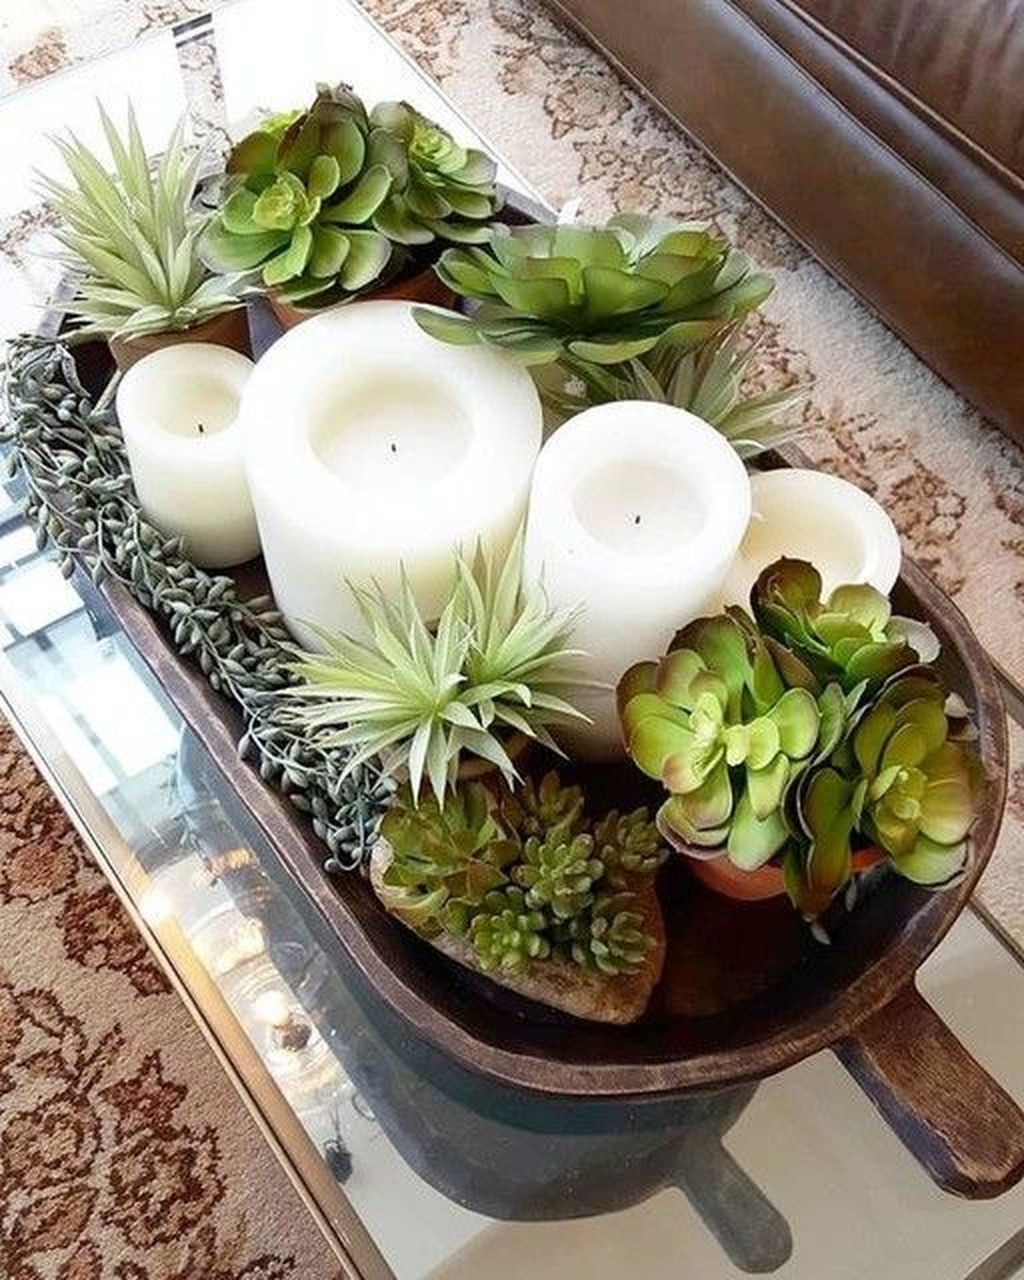 33 Lovely Summer Centerpieces For Home Decoration Summer Brings A Table Centerpieces For Home Candle Centerpieces For Home Succulent Centerpiece Dining Room